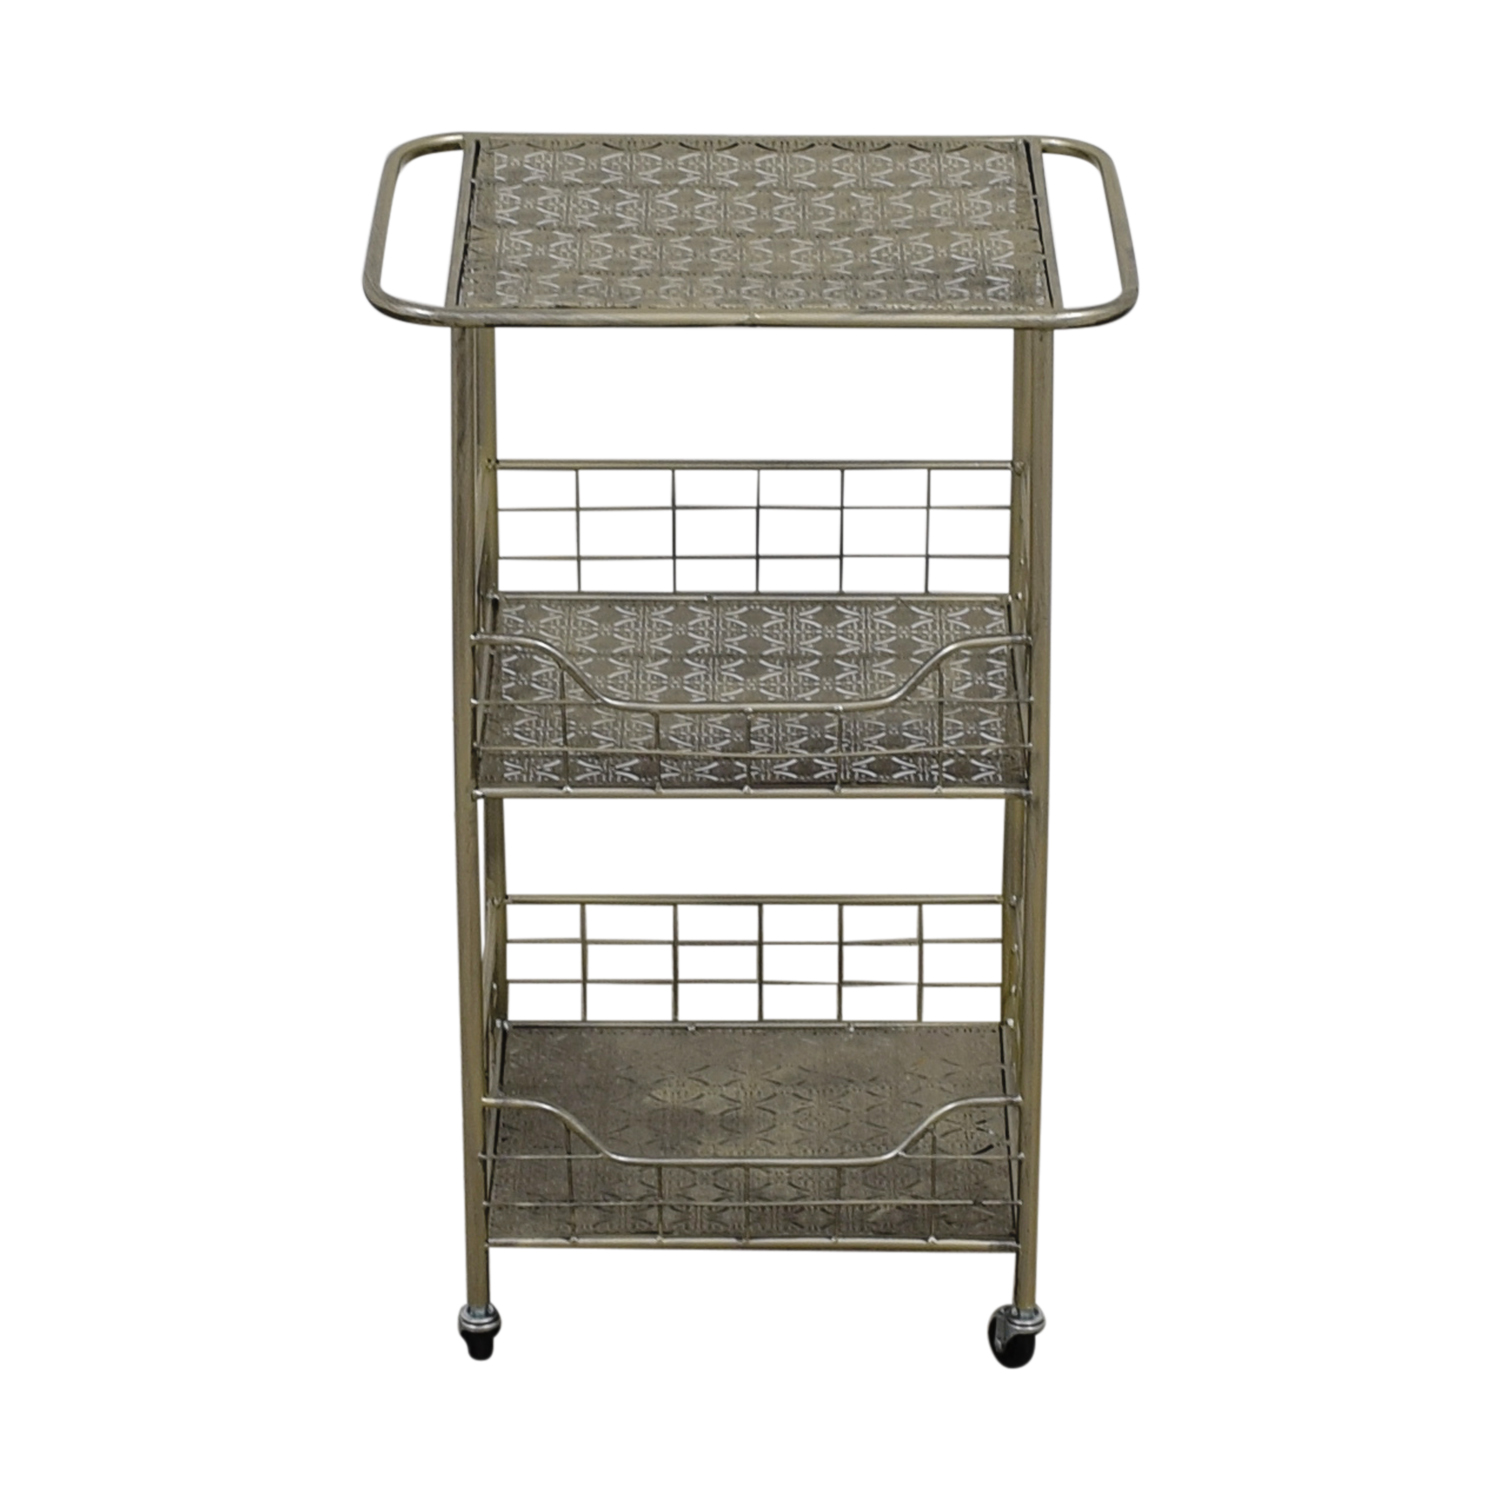 buy ABC Carpet & Home Silver Plated Kitchen Cart ABC Carpet & Home Sofas